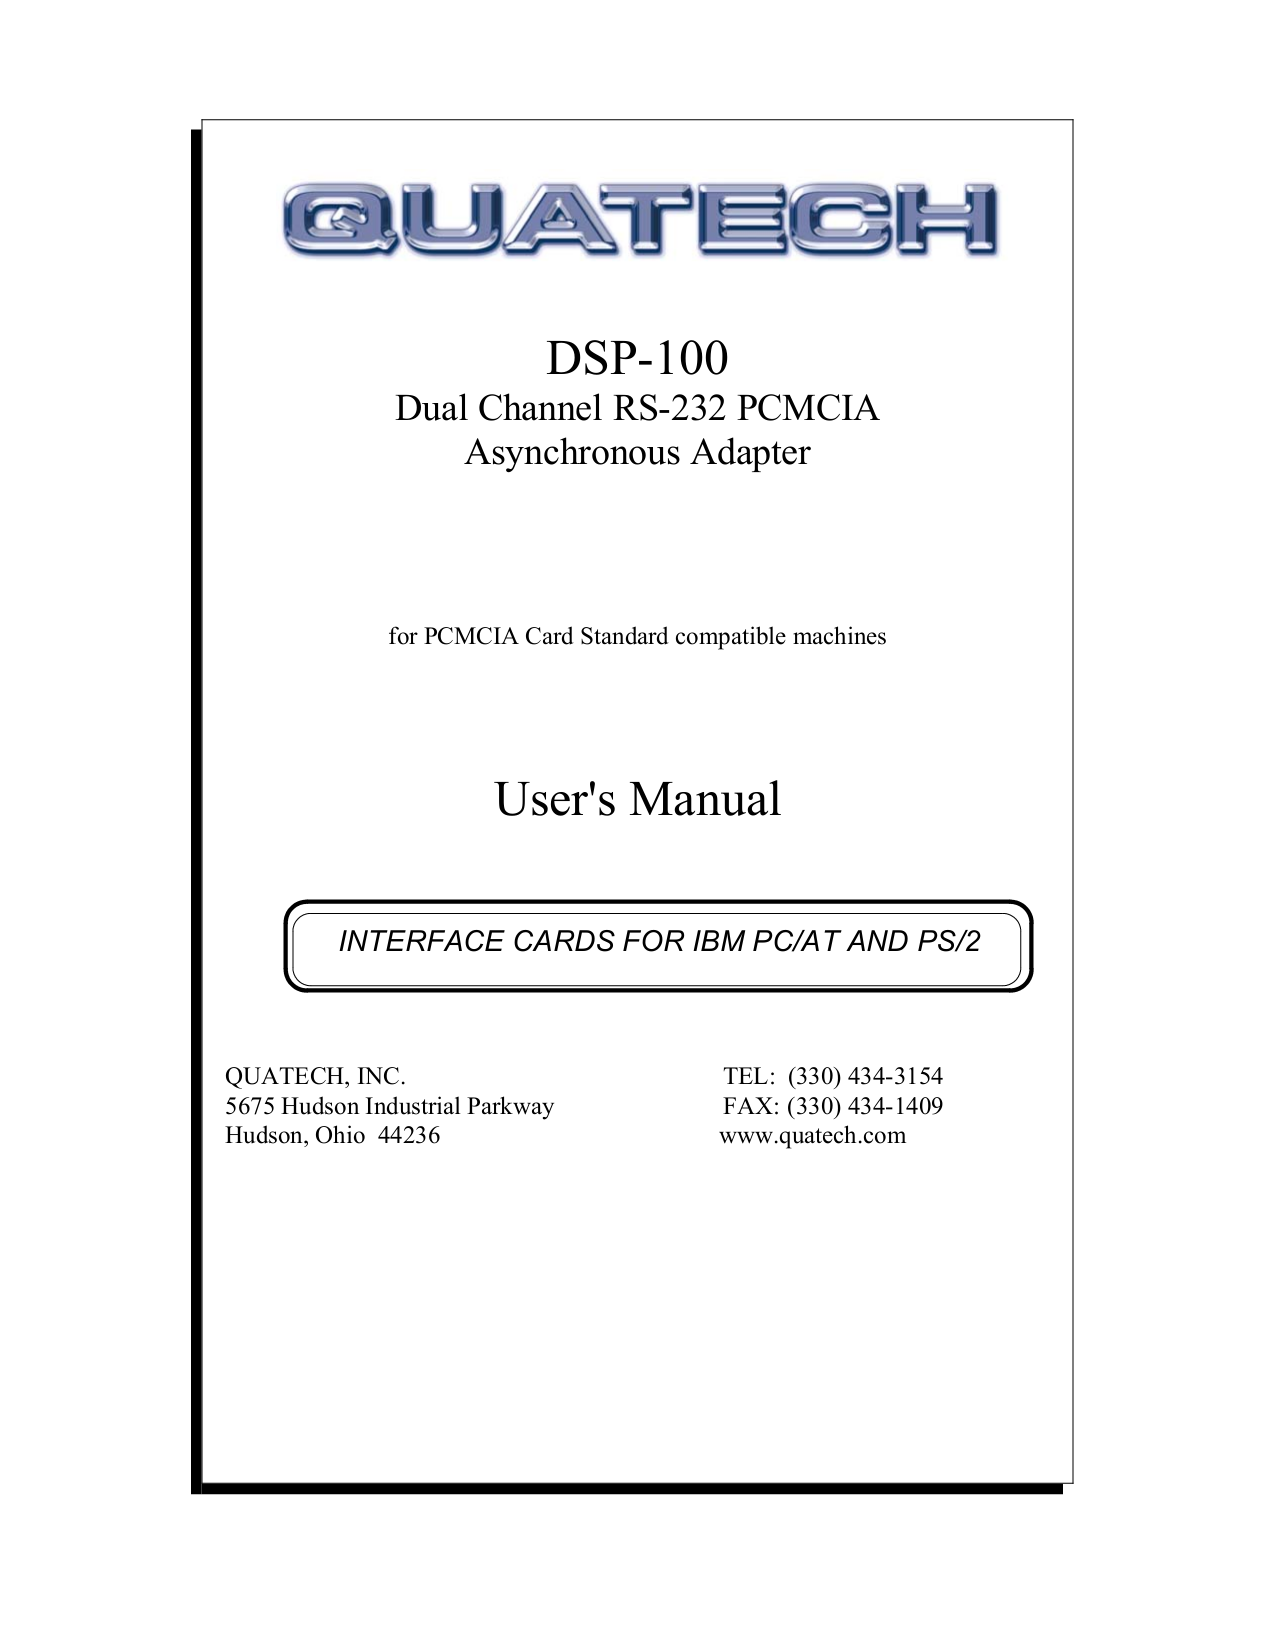 pdf for Quatech Other DSP-300 PCMCIA Cards manual